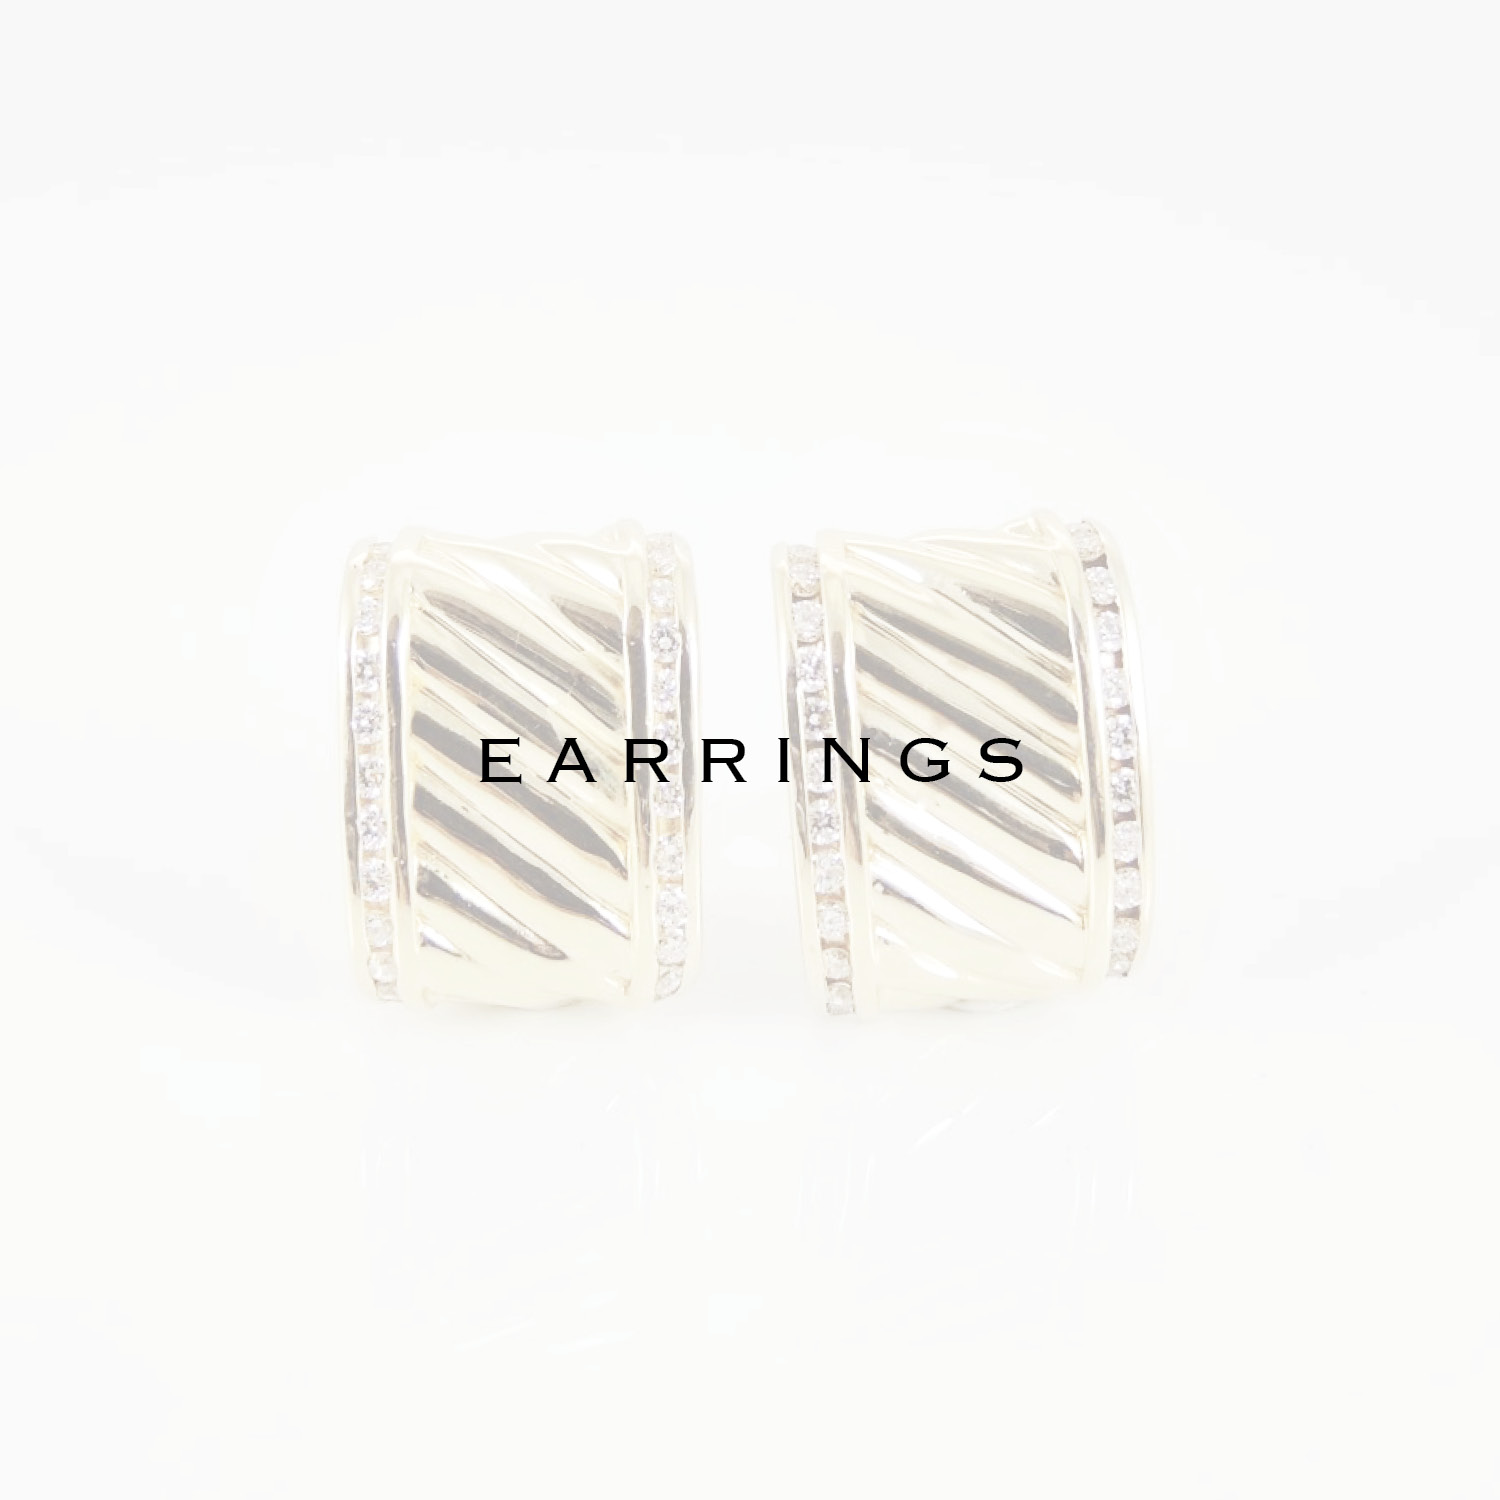 BT_Artwork_Uploads_Product_Earrings.jpg